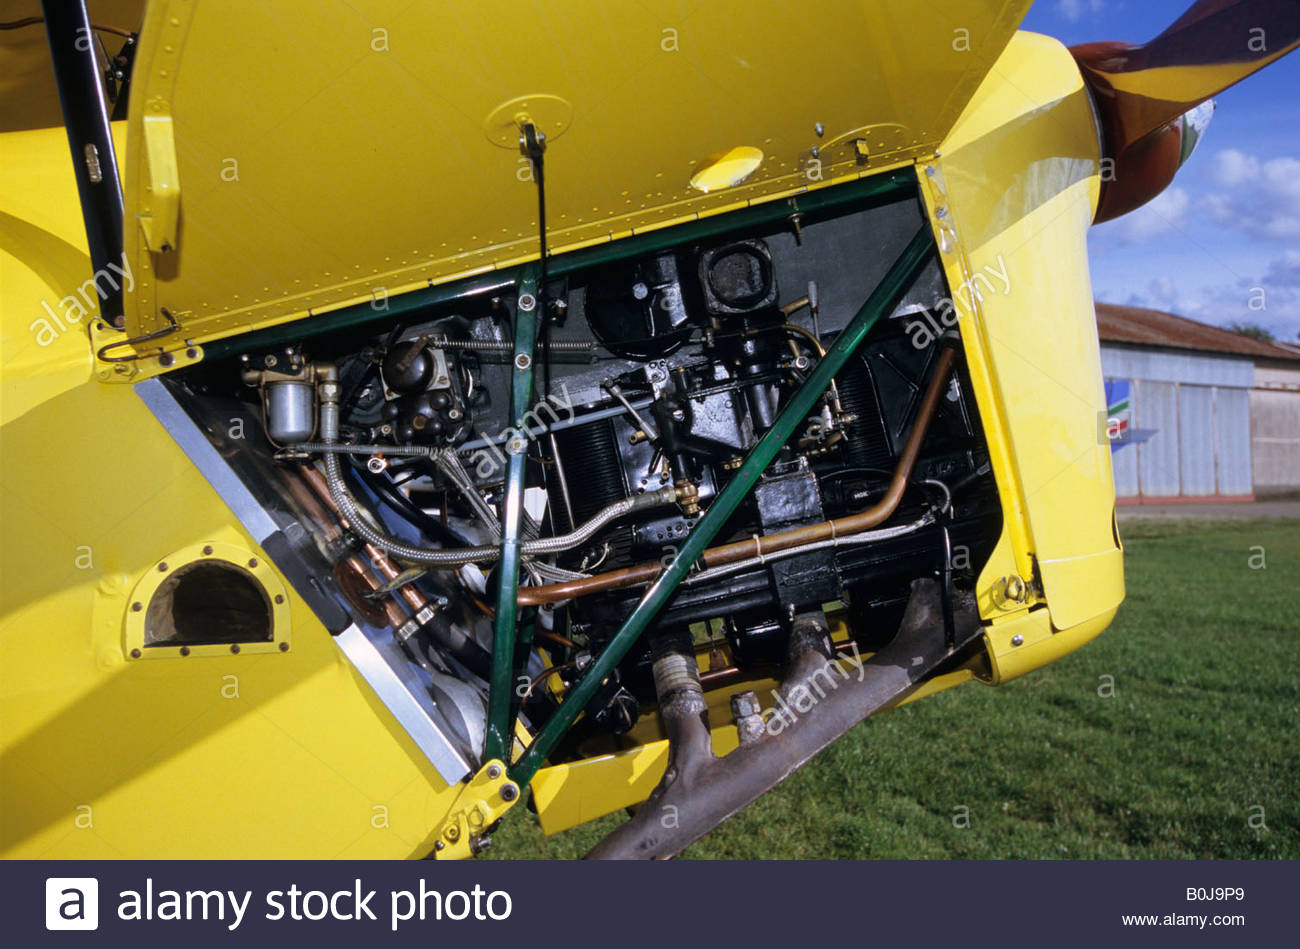 145-hp-108-kw-gipsy-major-piston-engine-old-trainer-english-biplane-B0J9P9.jpg